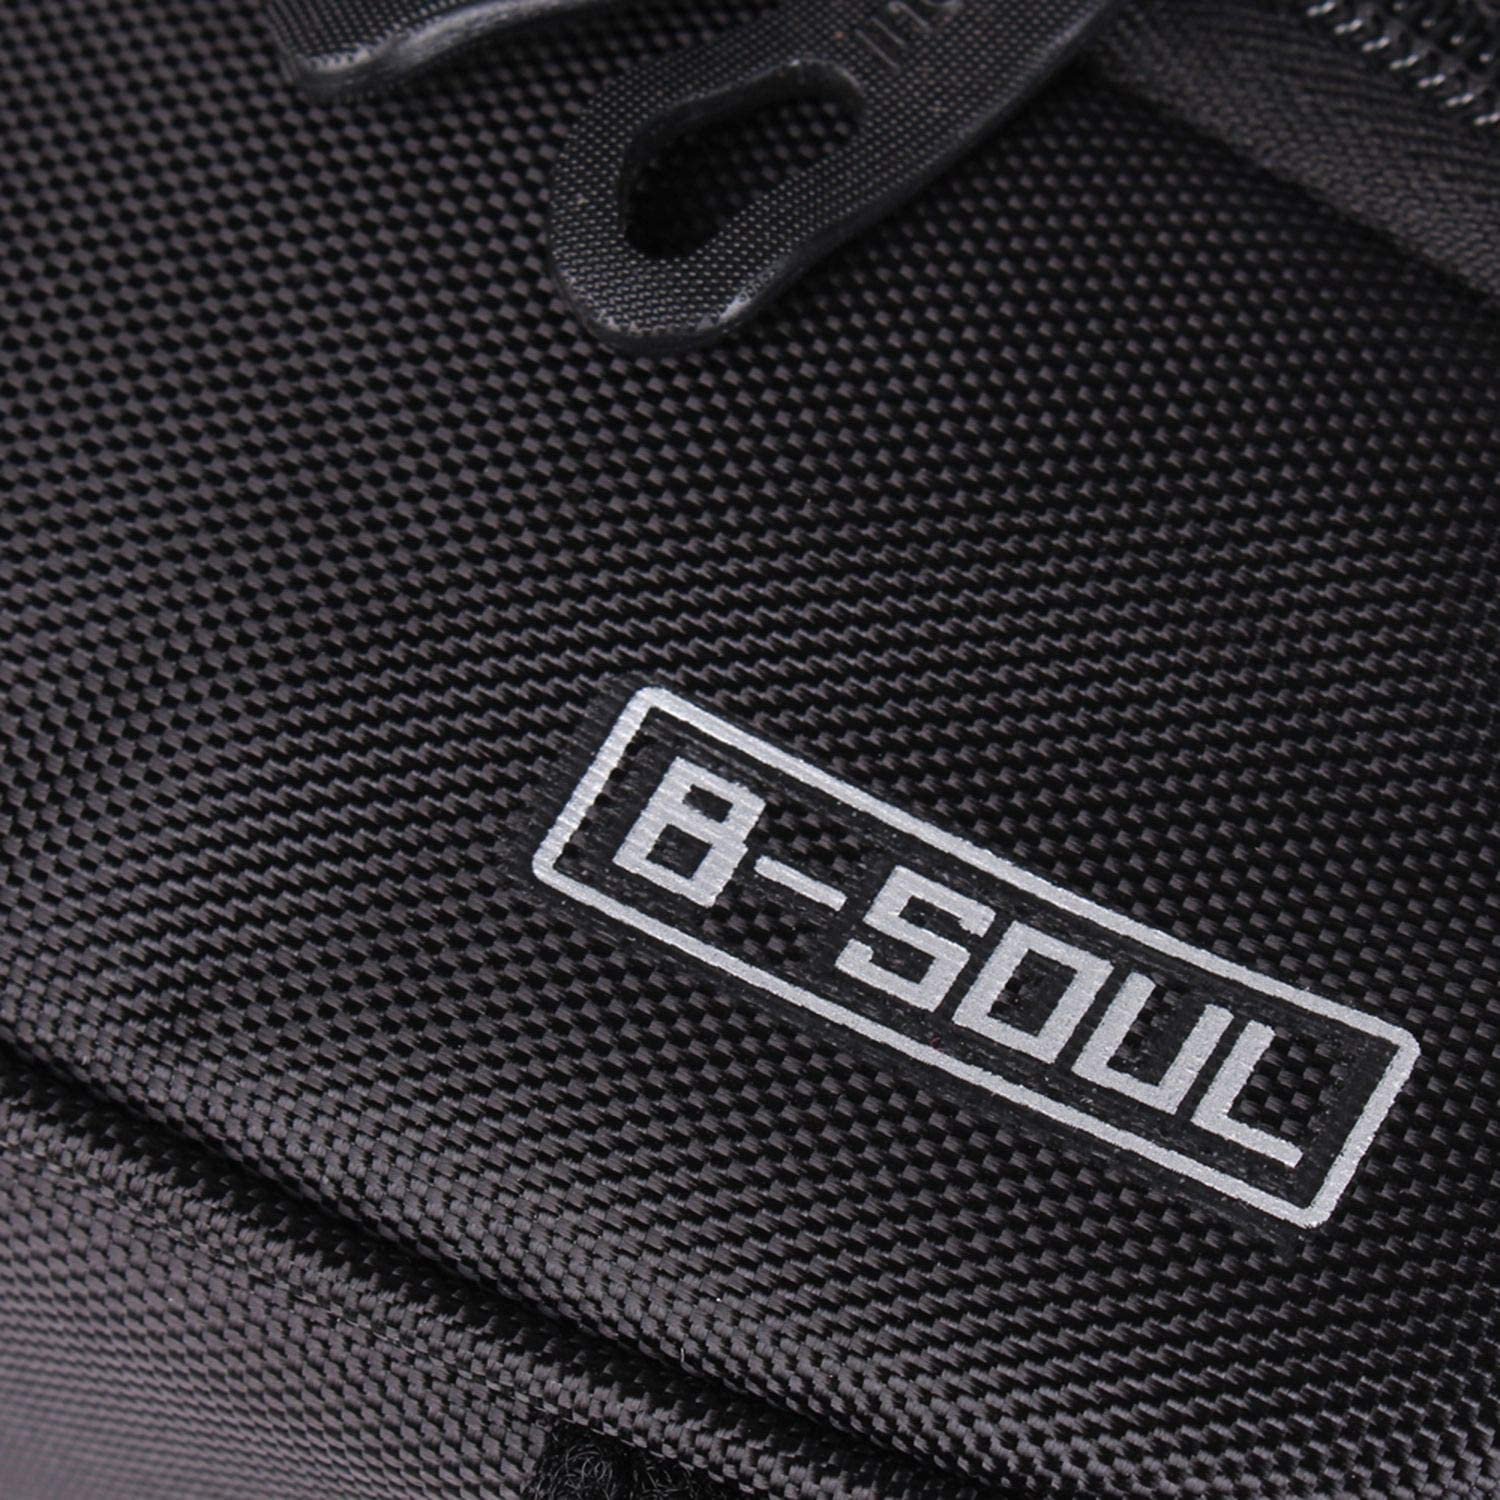 B-Soul Fashionable Touch Screen MTB Bike Bicycle Bags Waterproof Cycling Top Front Tube Frame Bags Bike Accessories